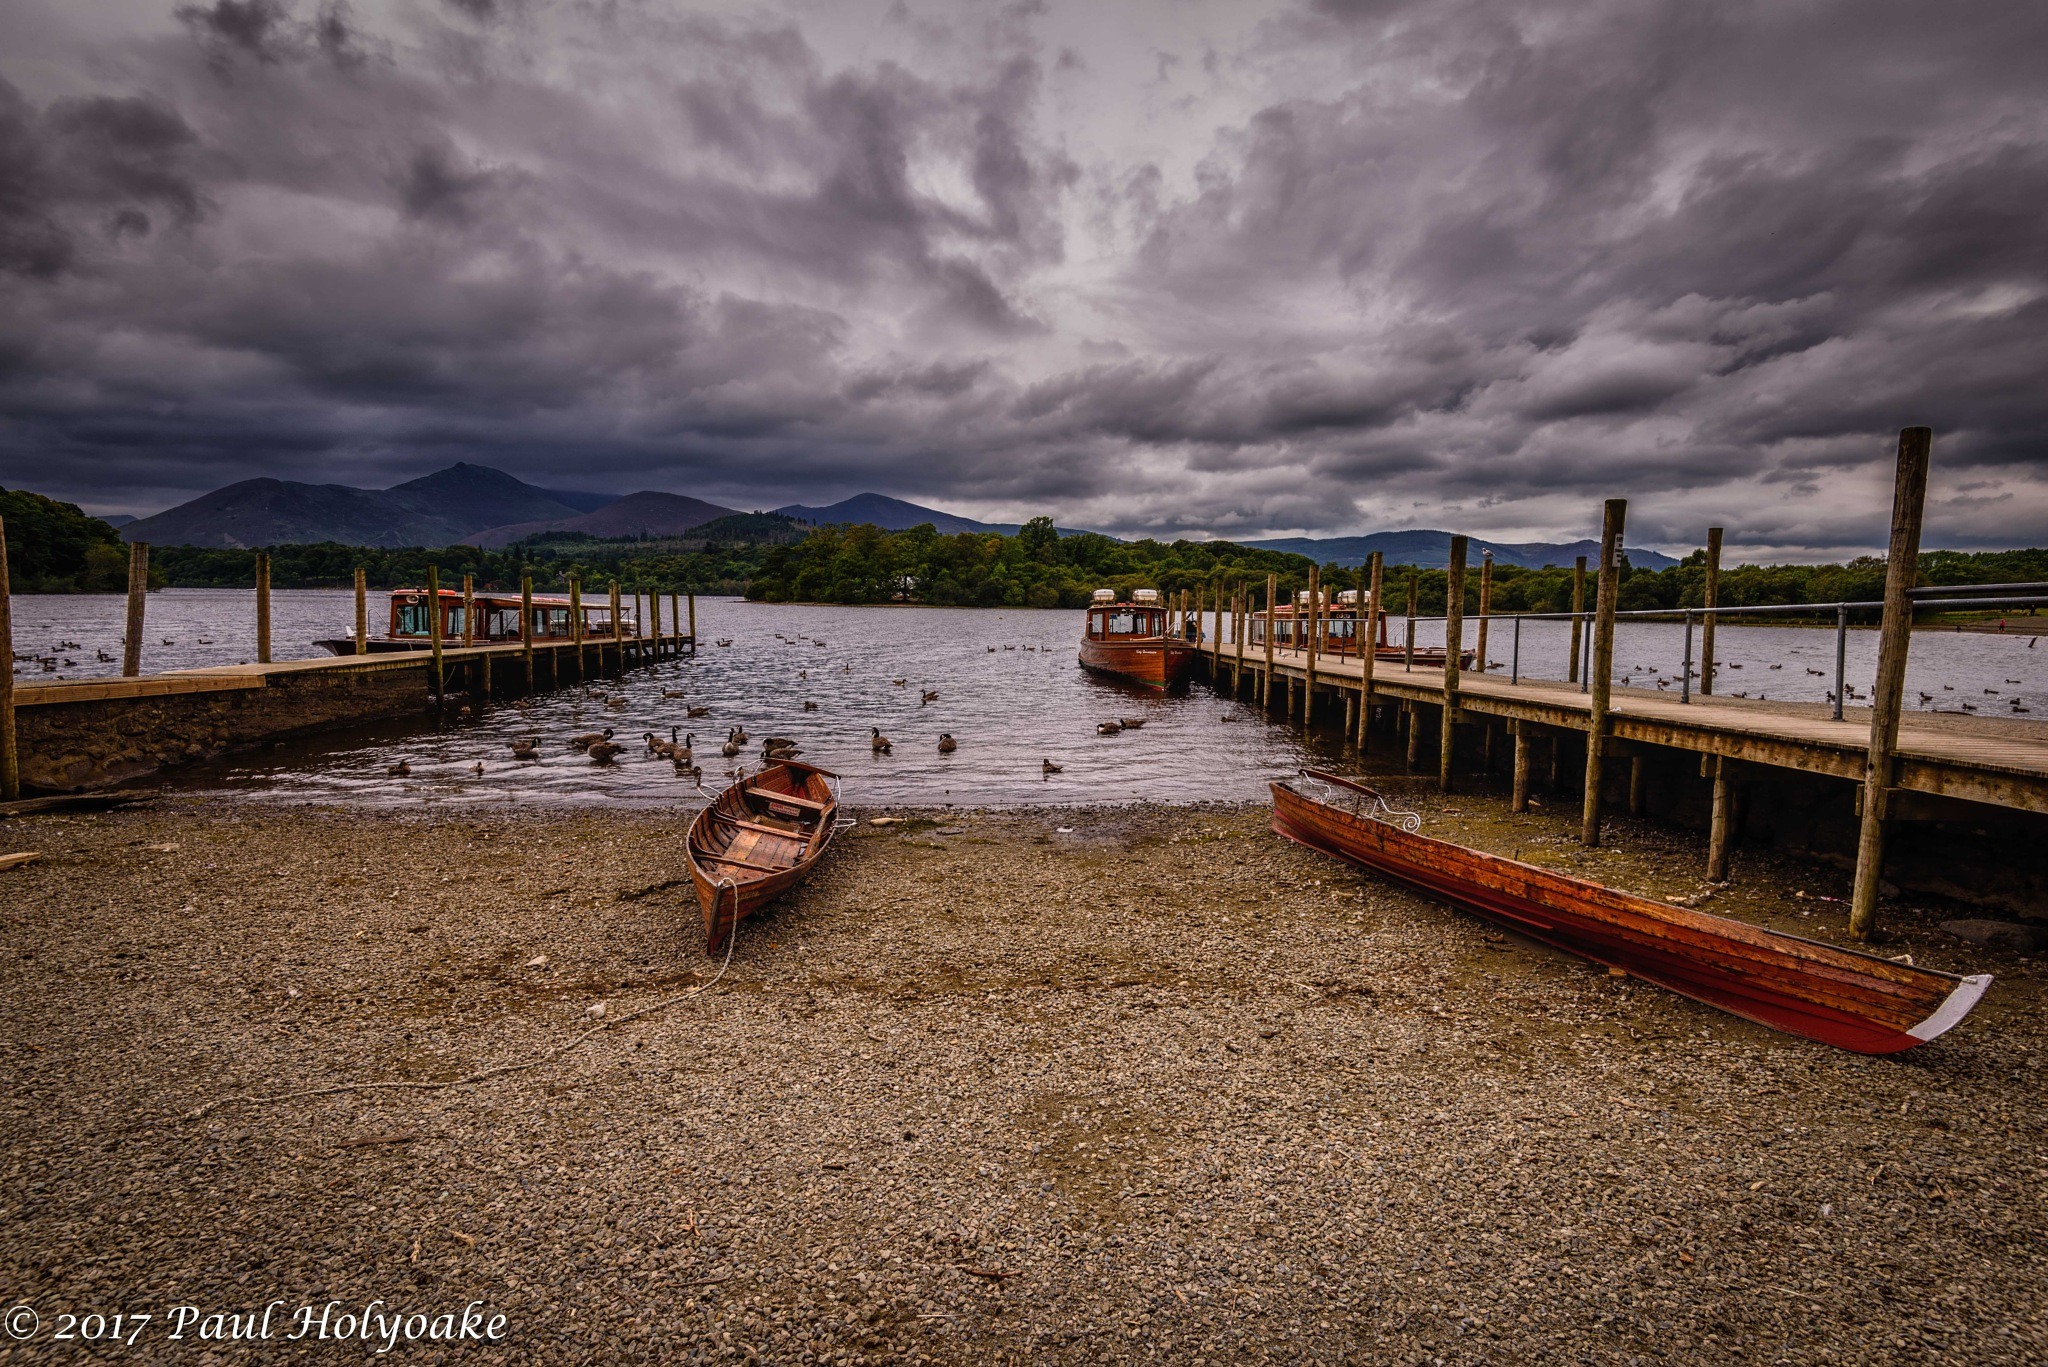 Boats at Derwent Water by Photon